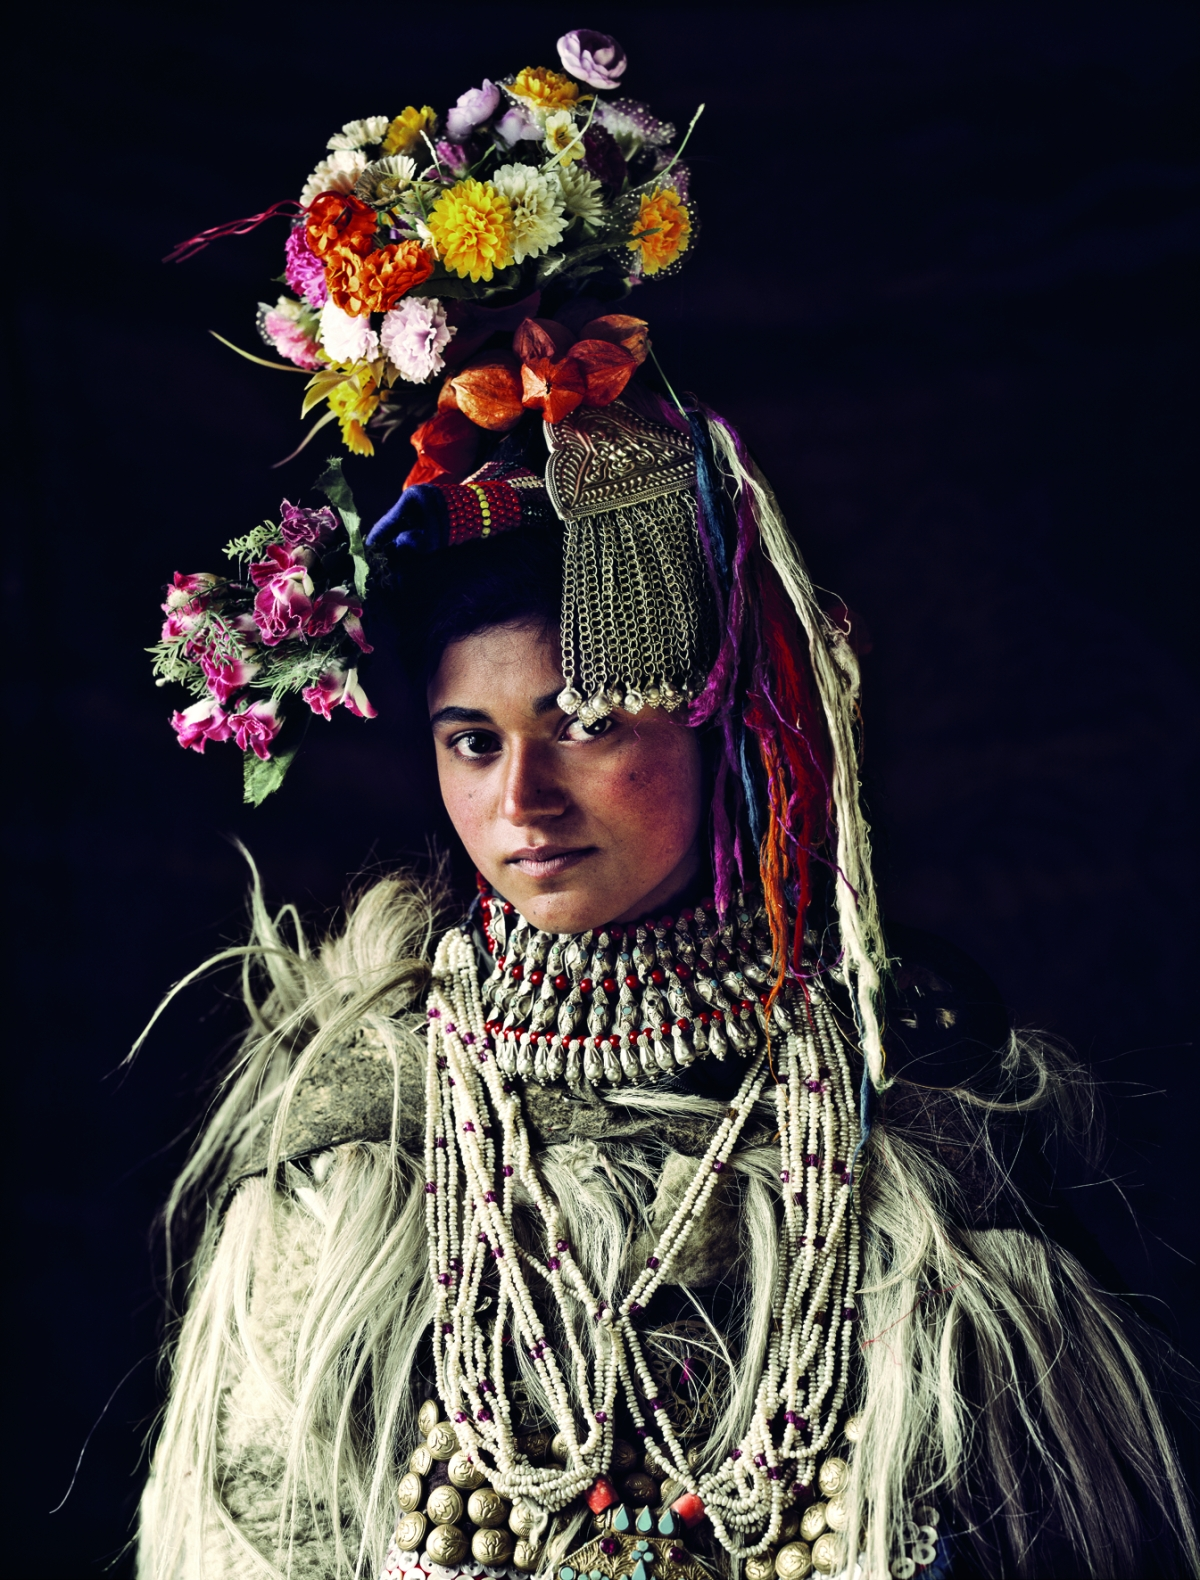 Photography - Jimmy Nelson, Drokpa